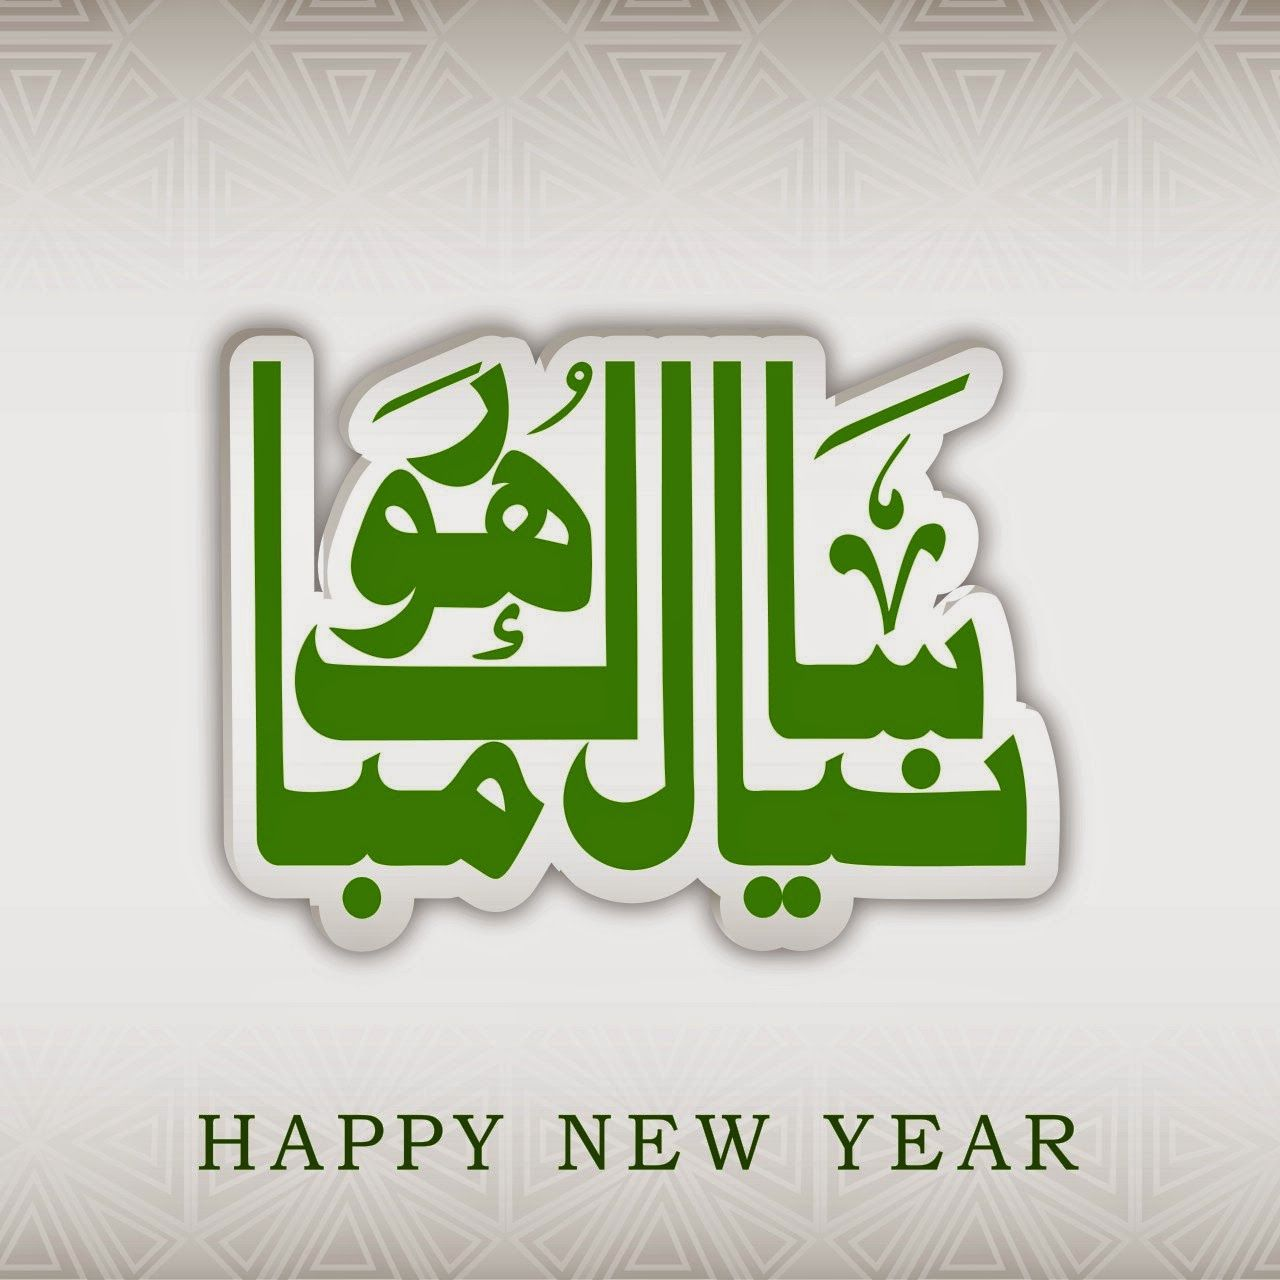 Happy New Year 2015 Sms Messages In Urdu Happy New Year Sms Happy New Year Wishes Happy New Year Fireworks